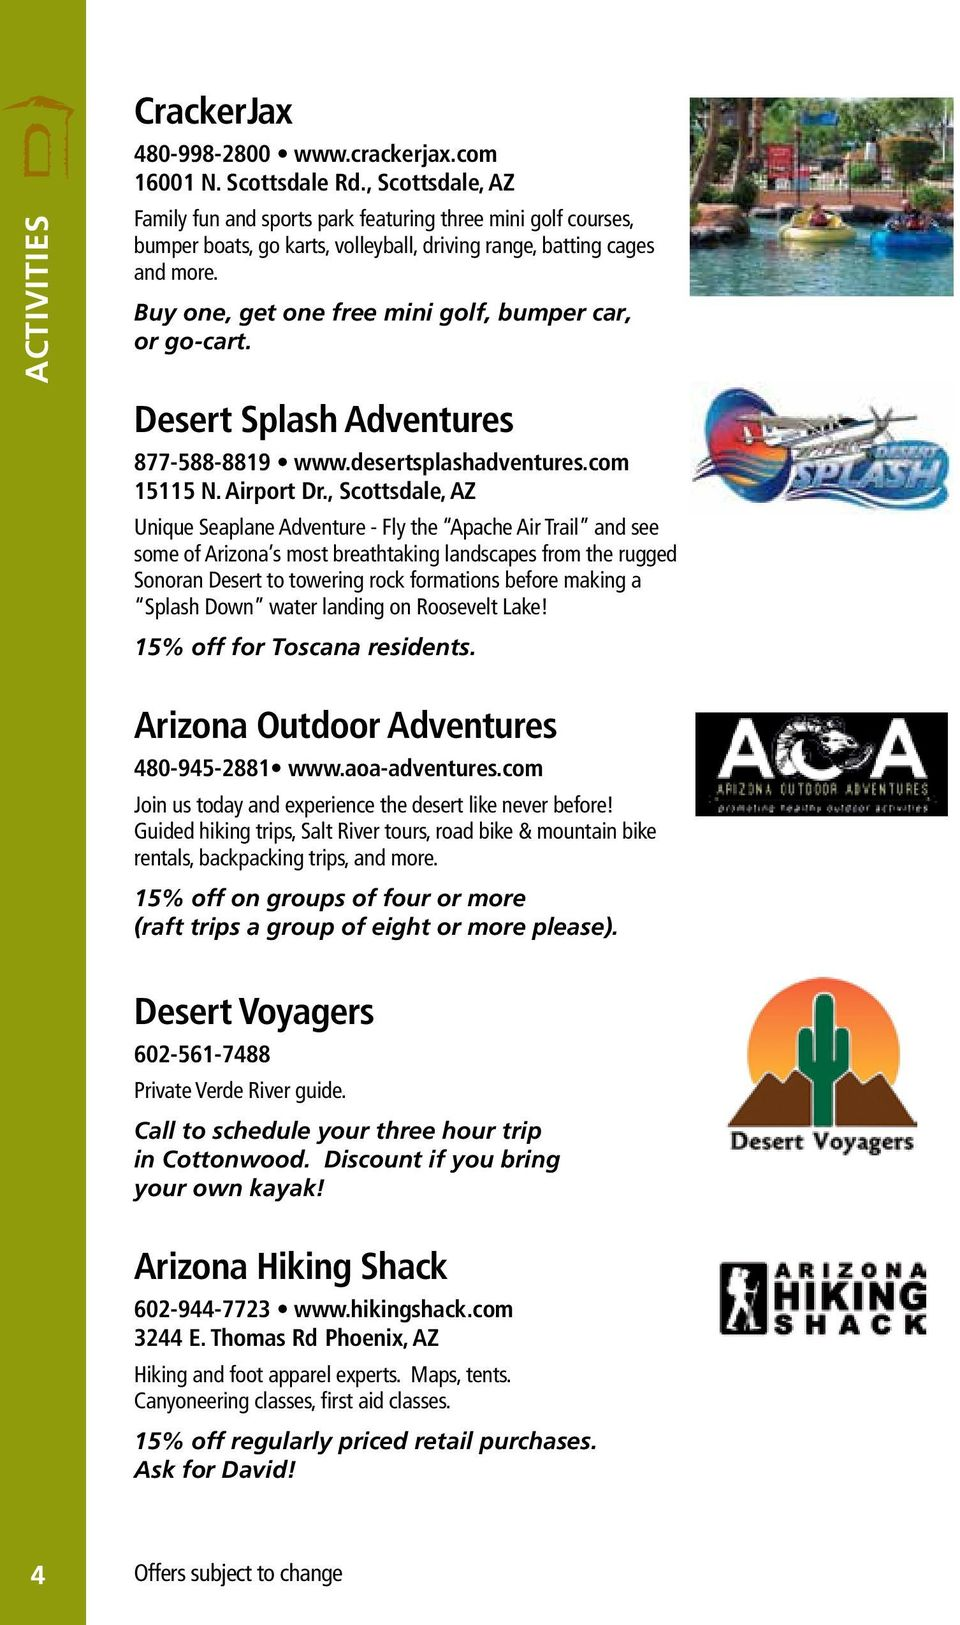 Buy one, get one free mini golf, bumper car, or go-cart. Desert Splash Adventures 877-588-8819 www.desertsplashadventures.com 15115 N. Airport Dr.